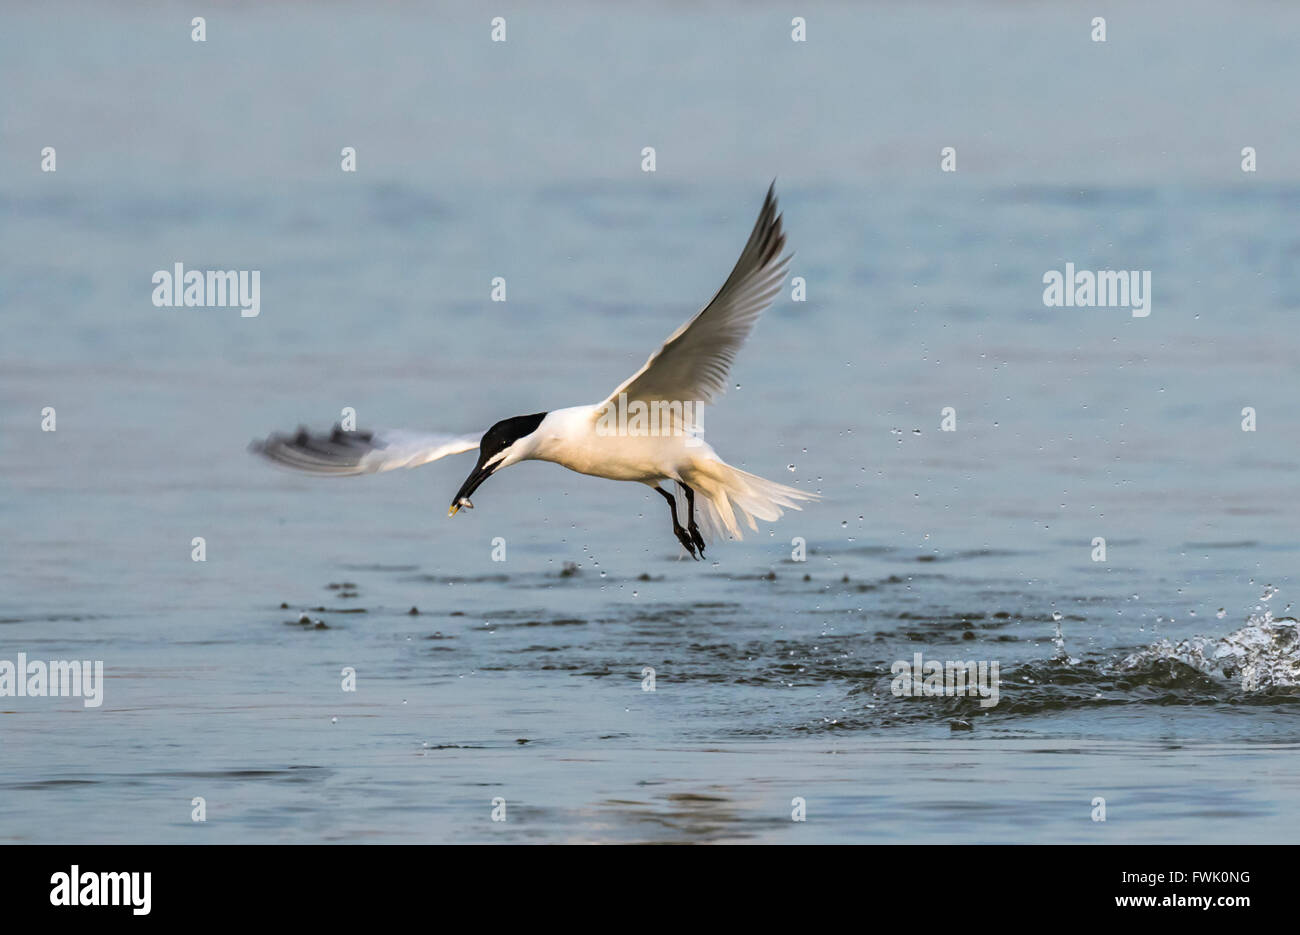 Sandwich tern (Thalasseus sandvicensis) hunting in the ocean, Galveston, Texas, USA. - Stock Image